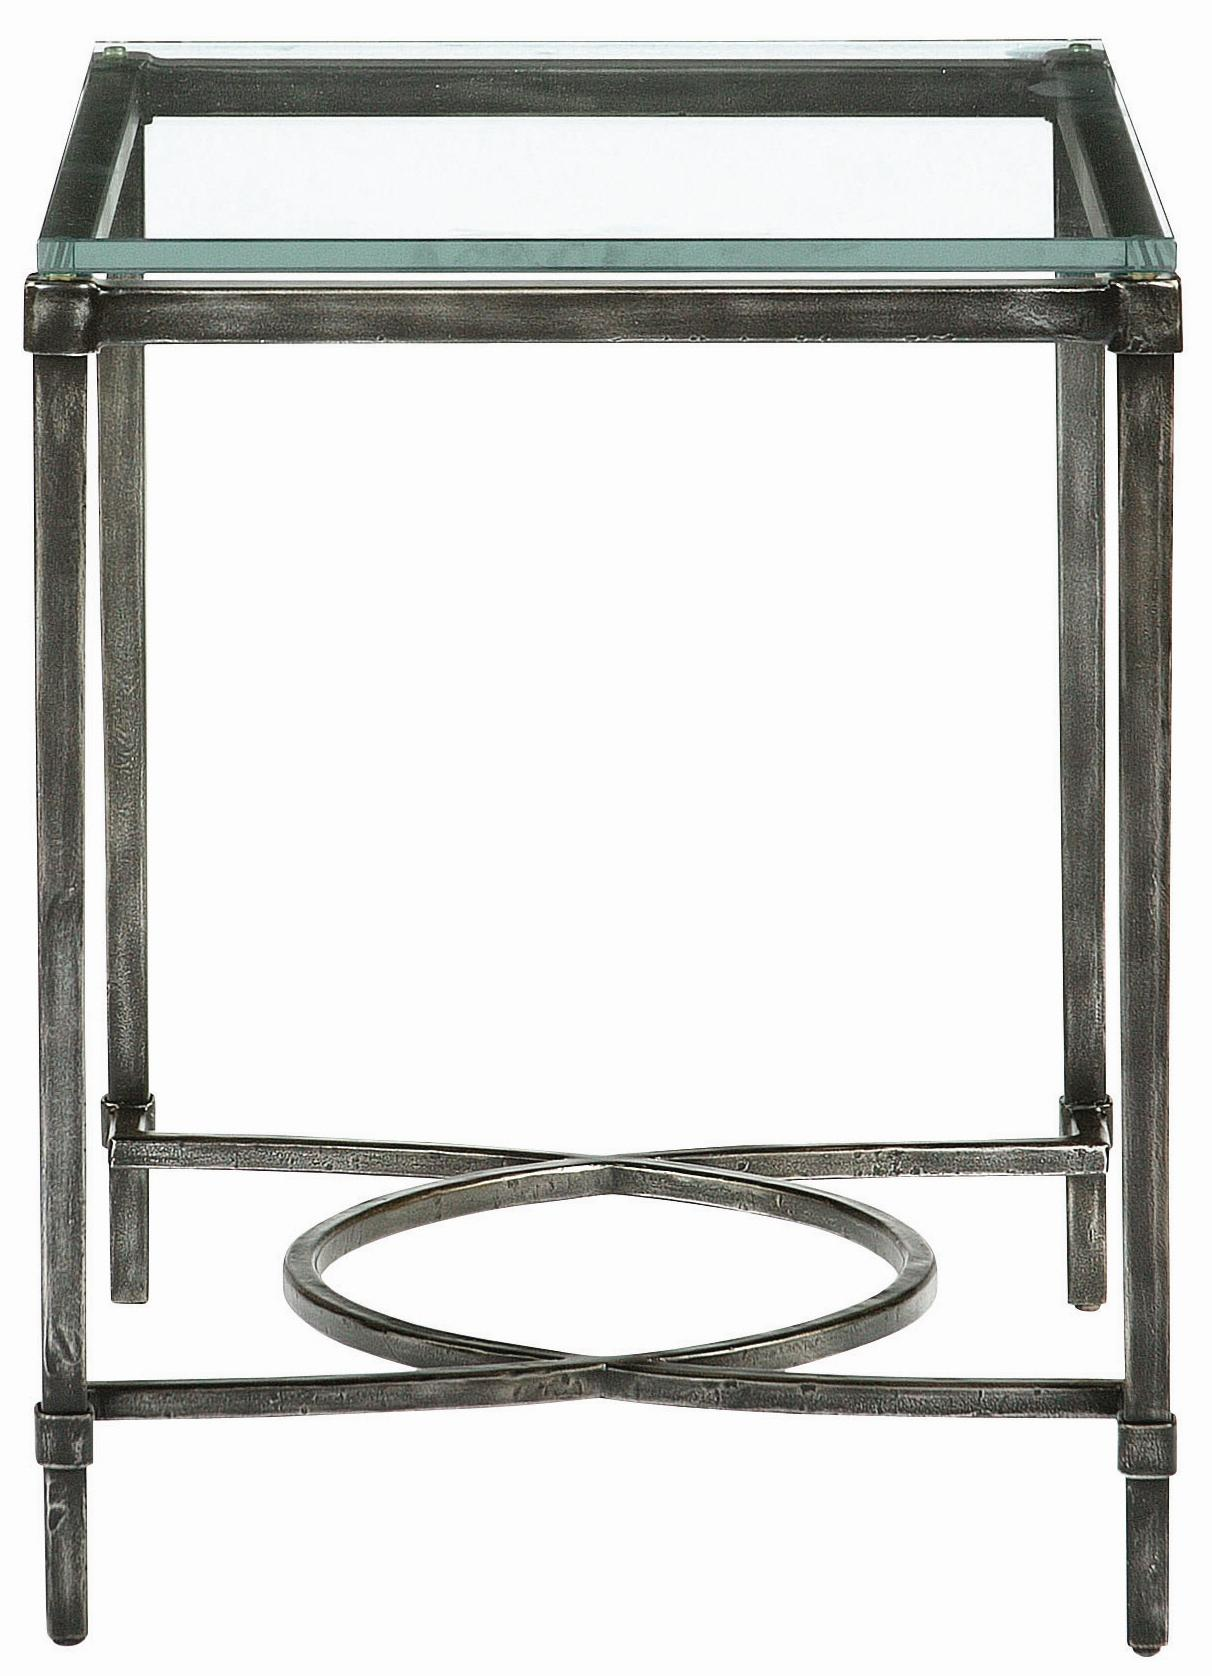 Interiors - Accents Palmer Metal End Table by Bernhardt at Baer's Furniture